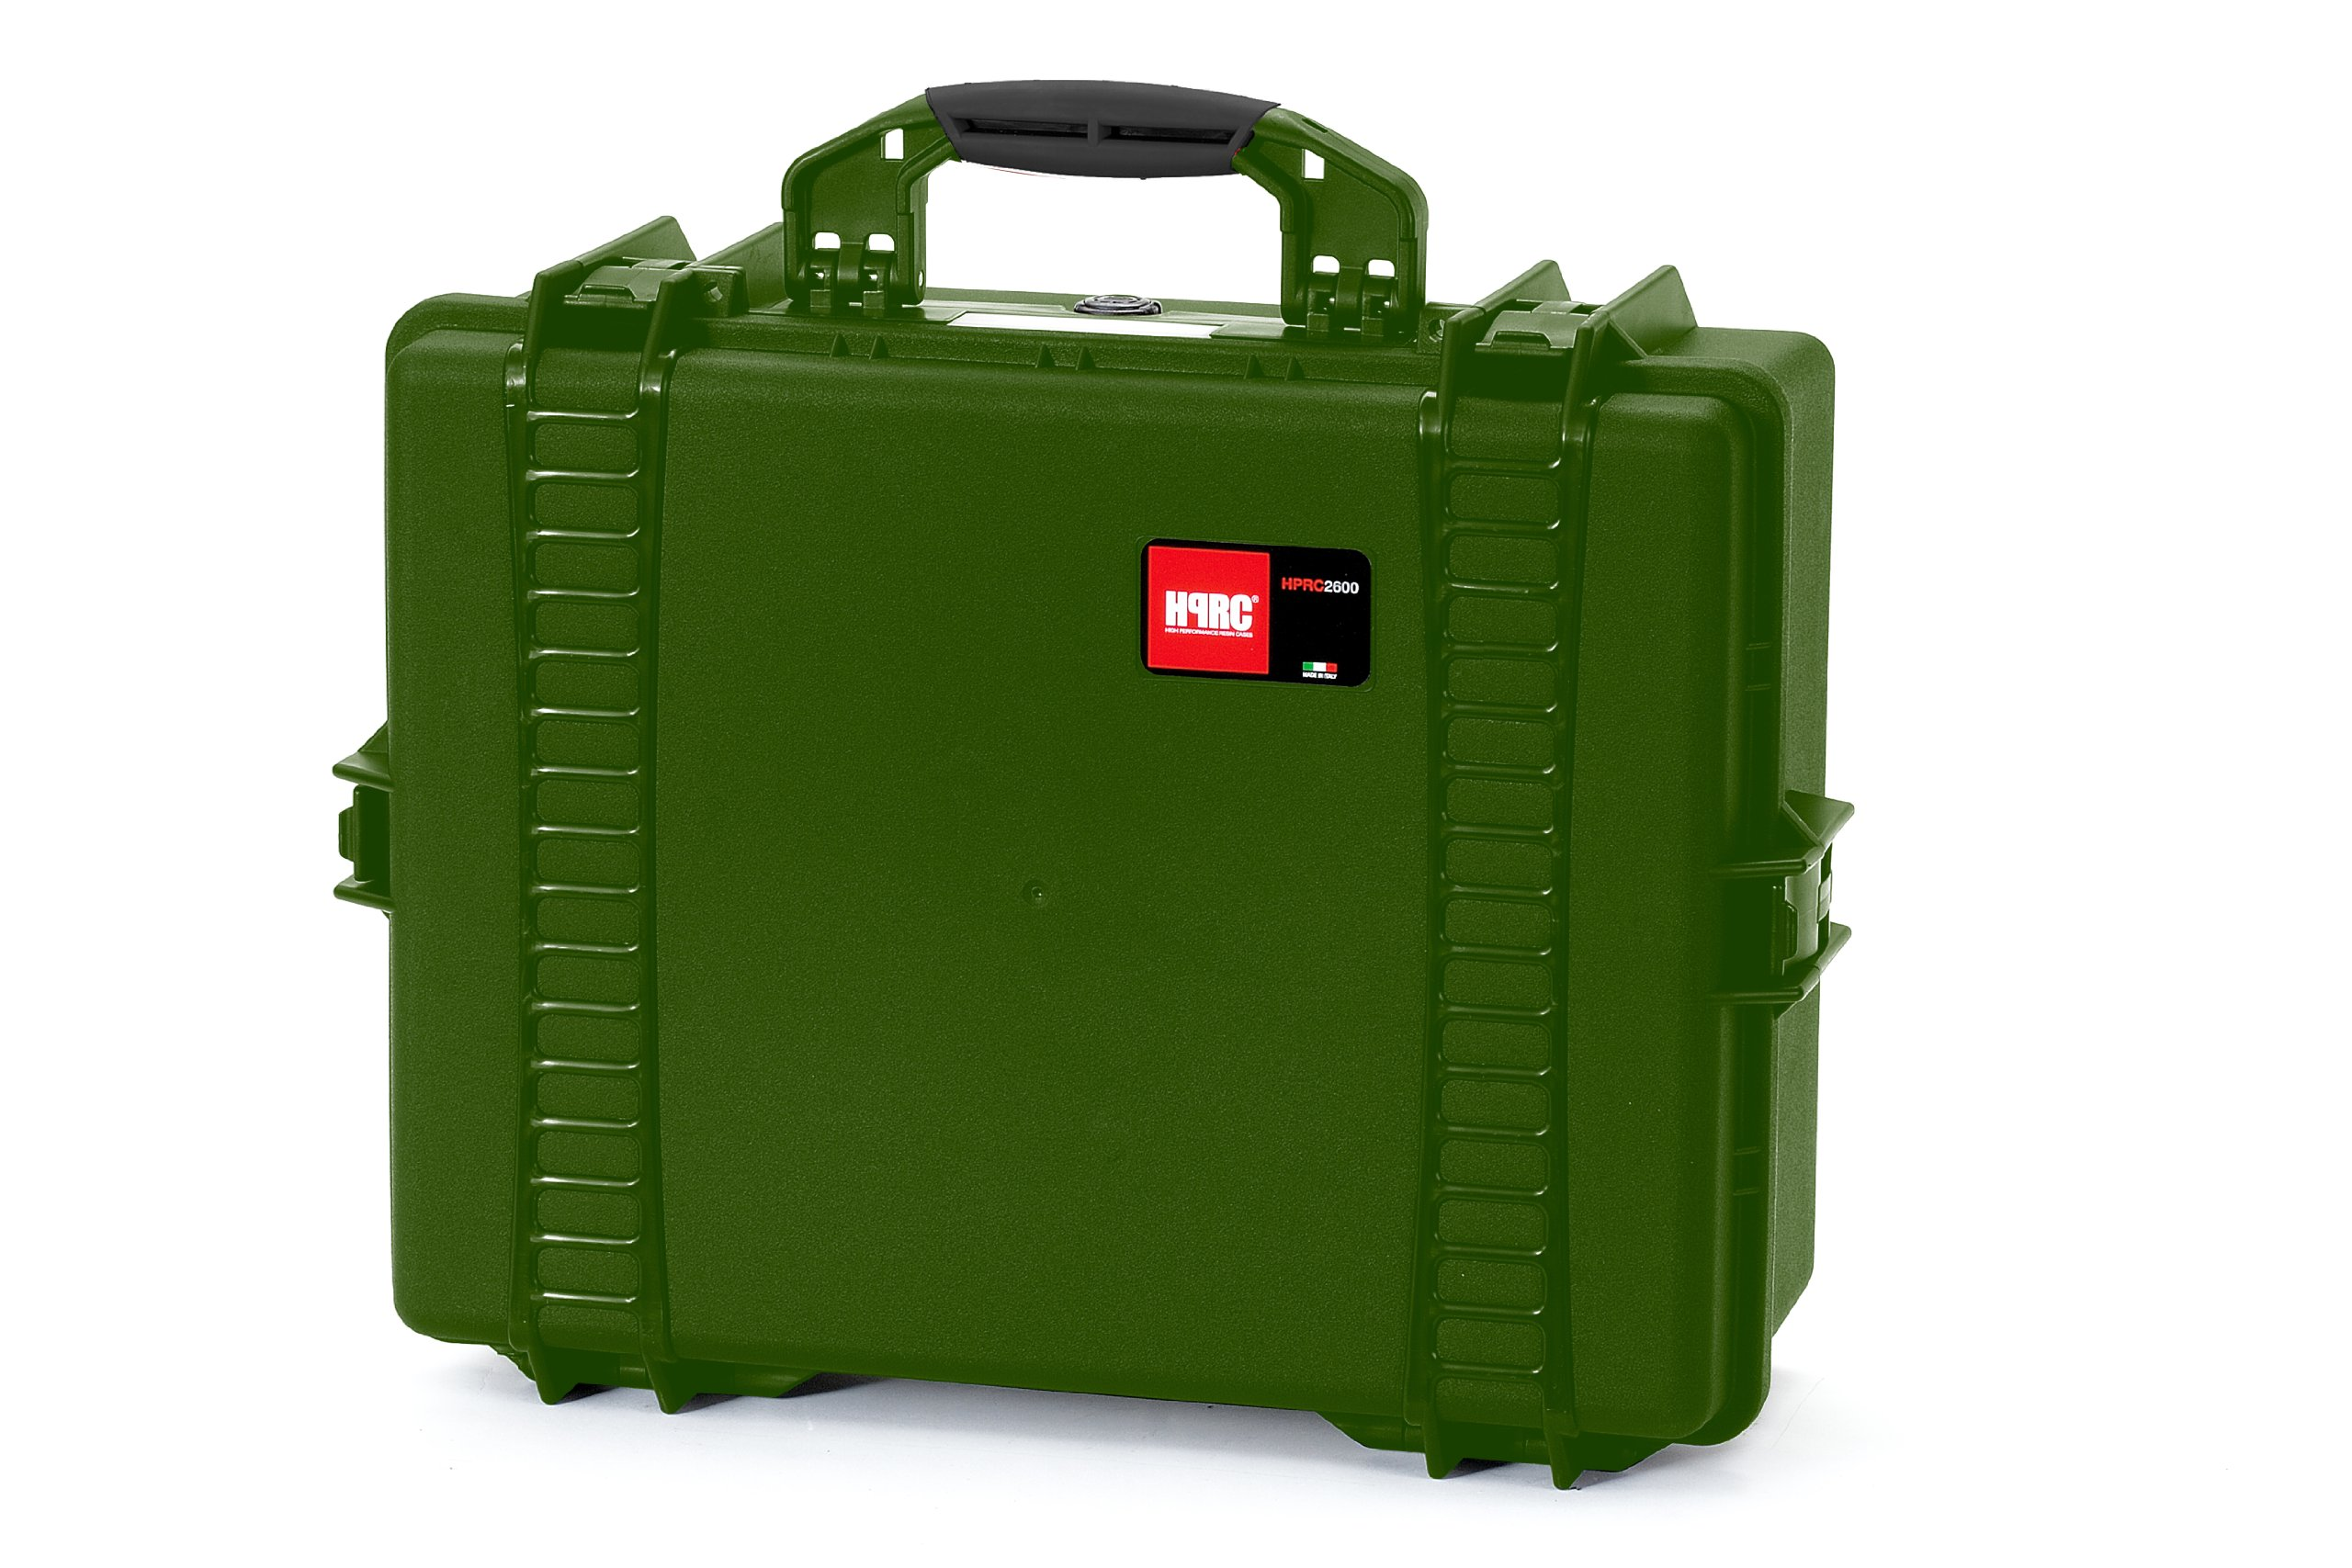 HPRC 2600F Hard Case with Cubed Foam (Olive)